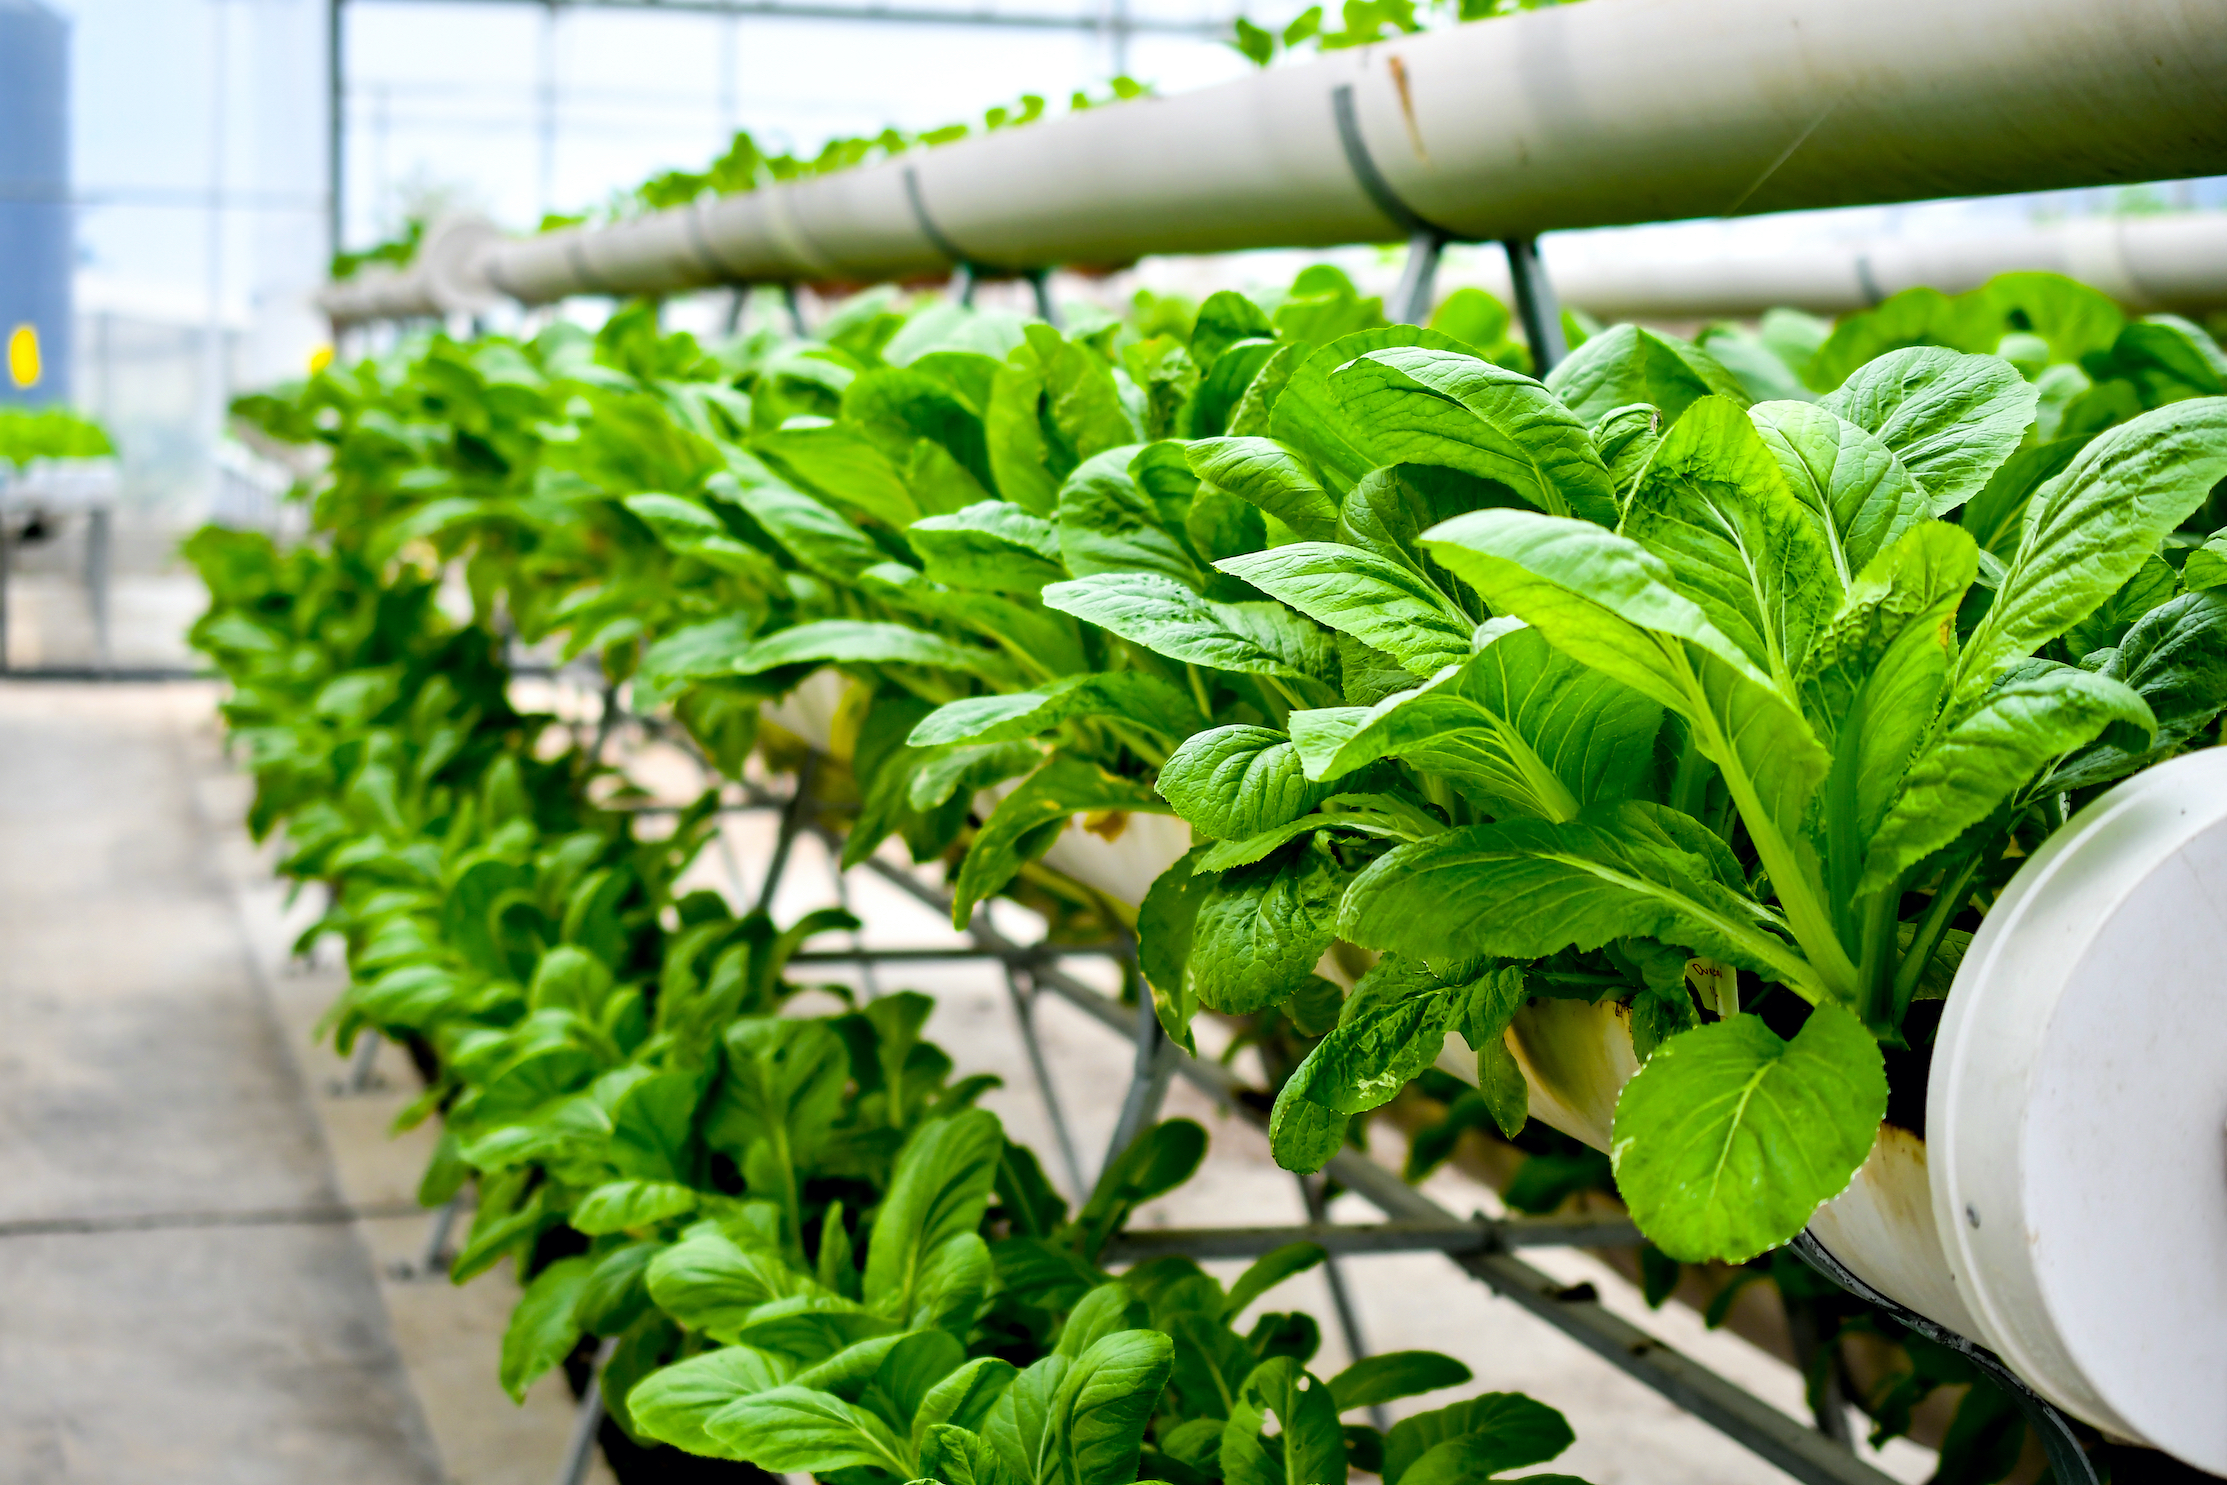 The decarbonization promise of indoor agriculture is still in the seed stage